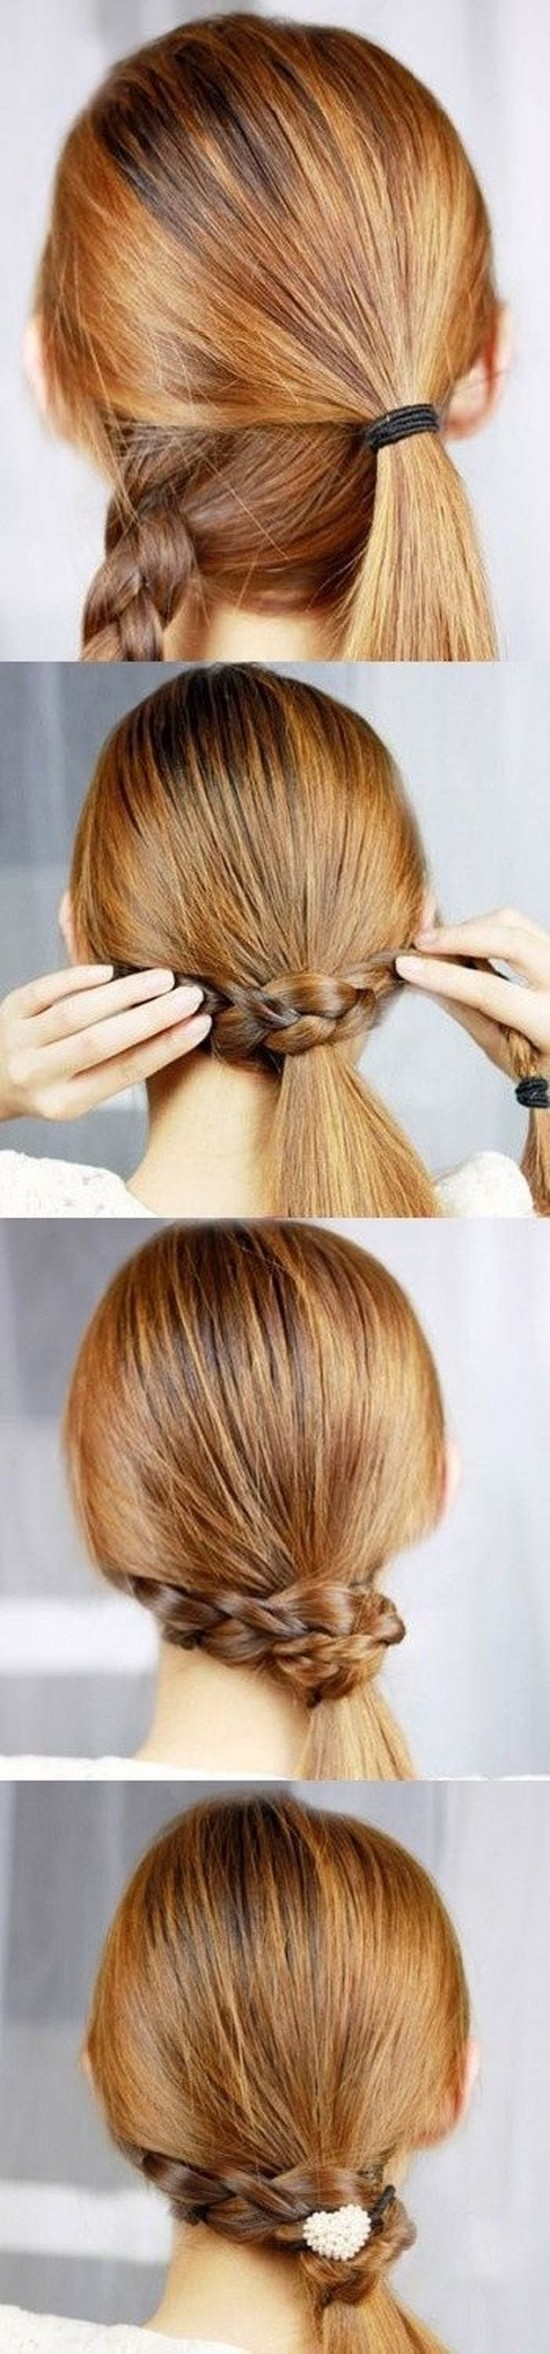 beautiful long hairstyles : Displaying 14> Images For - Beautiful Easy Hairstyles...